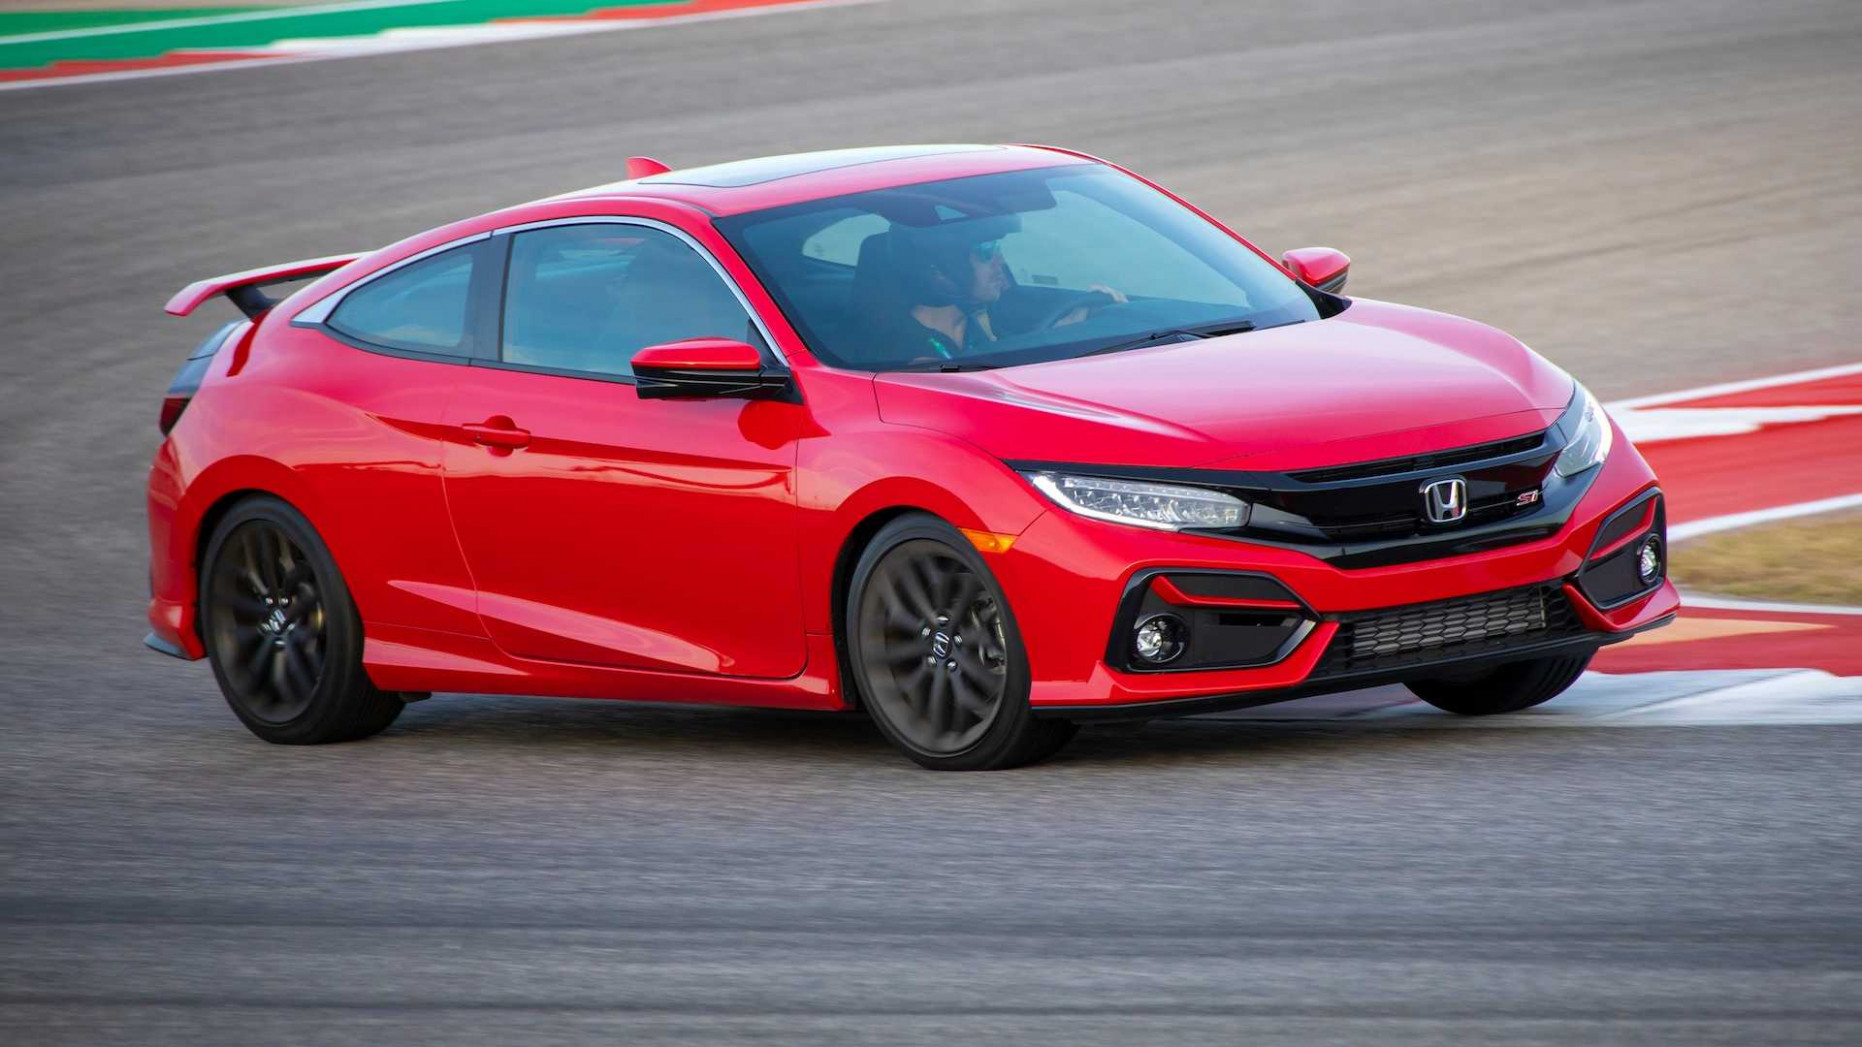 6 Honda Civic Gets $6,6 Discount, But There Are A Few Catches